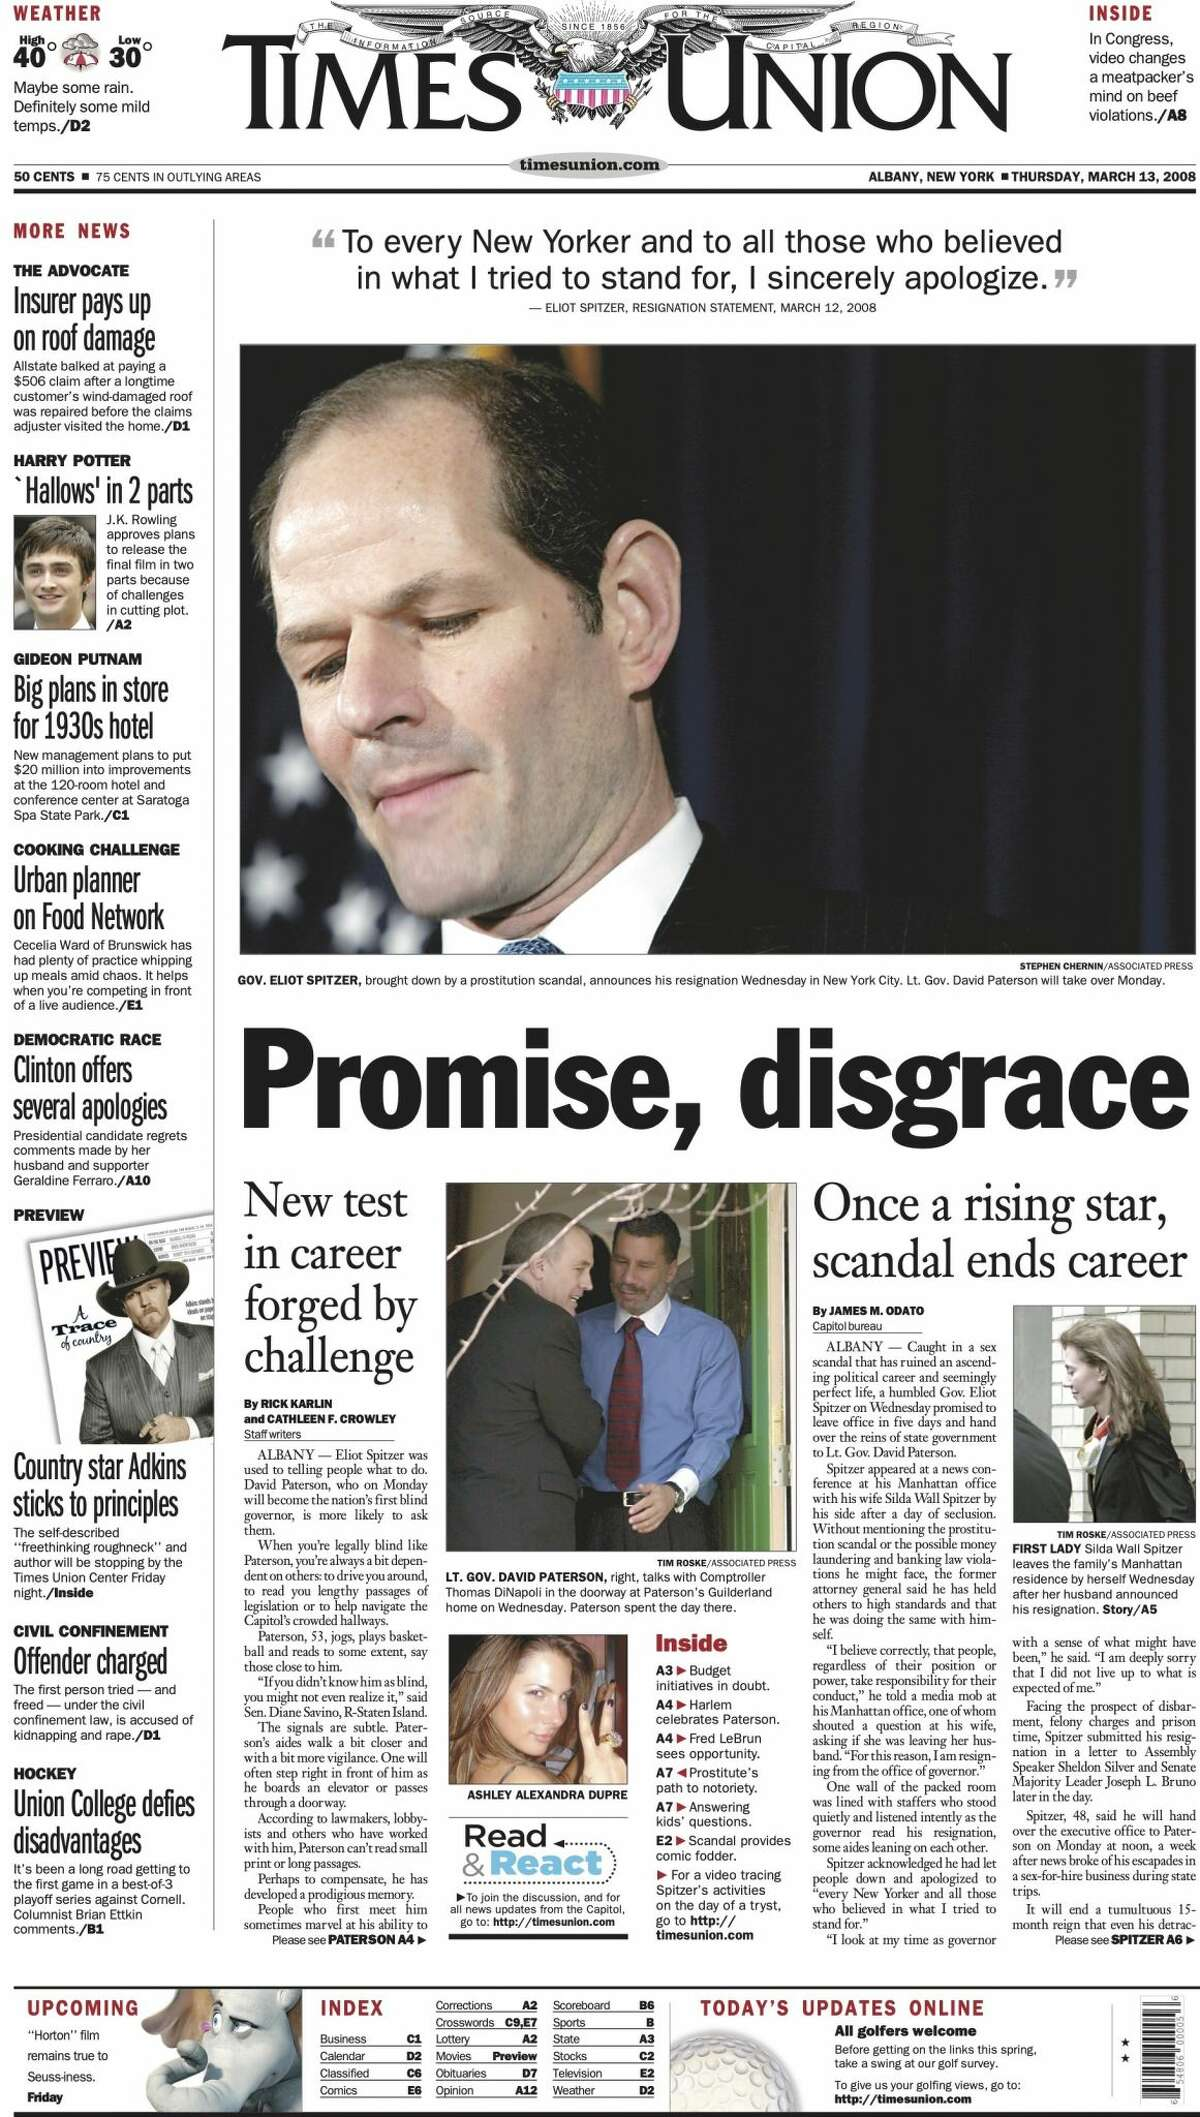 Front page of the Times Union on March 13, 2008, the day after New York Gov. Eliot Spitzer announced his resignation in the wake of a sex scandal.